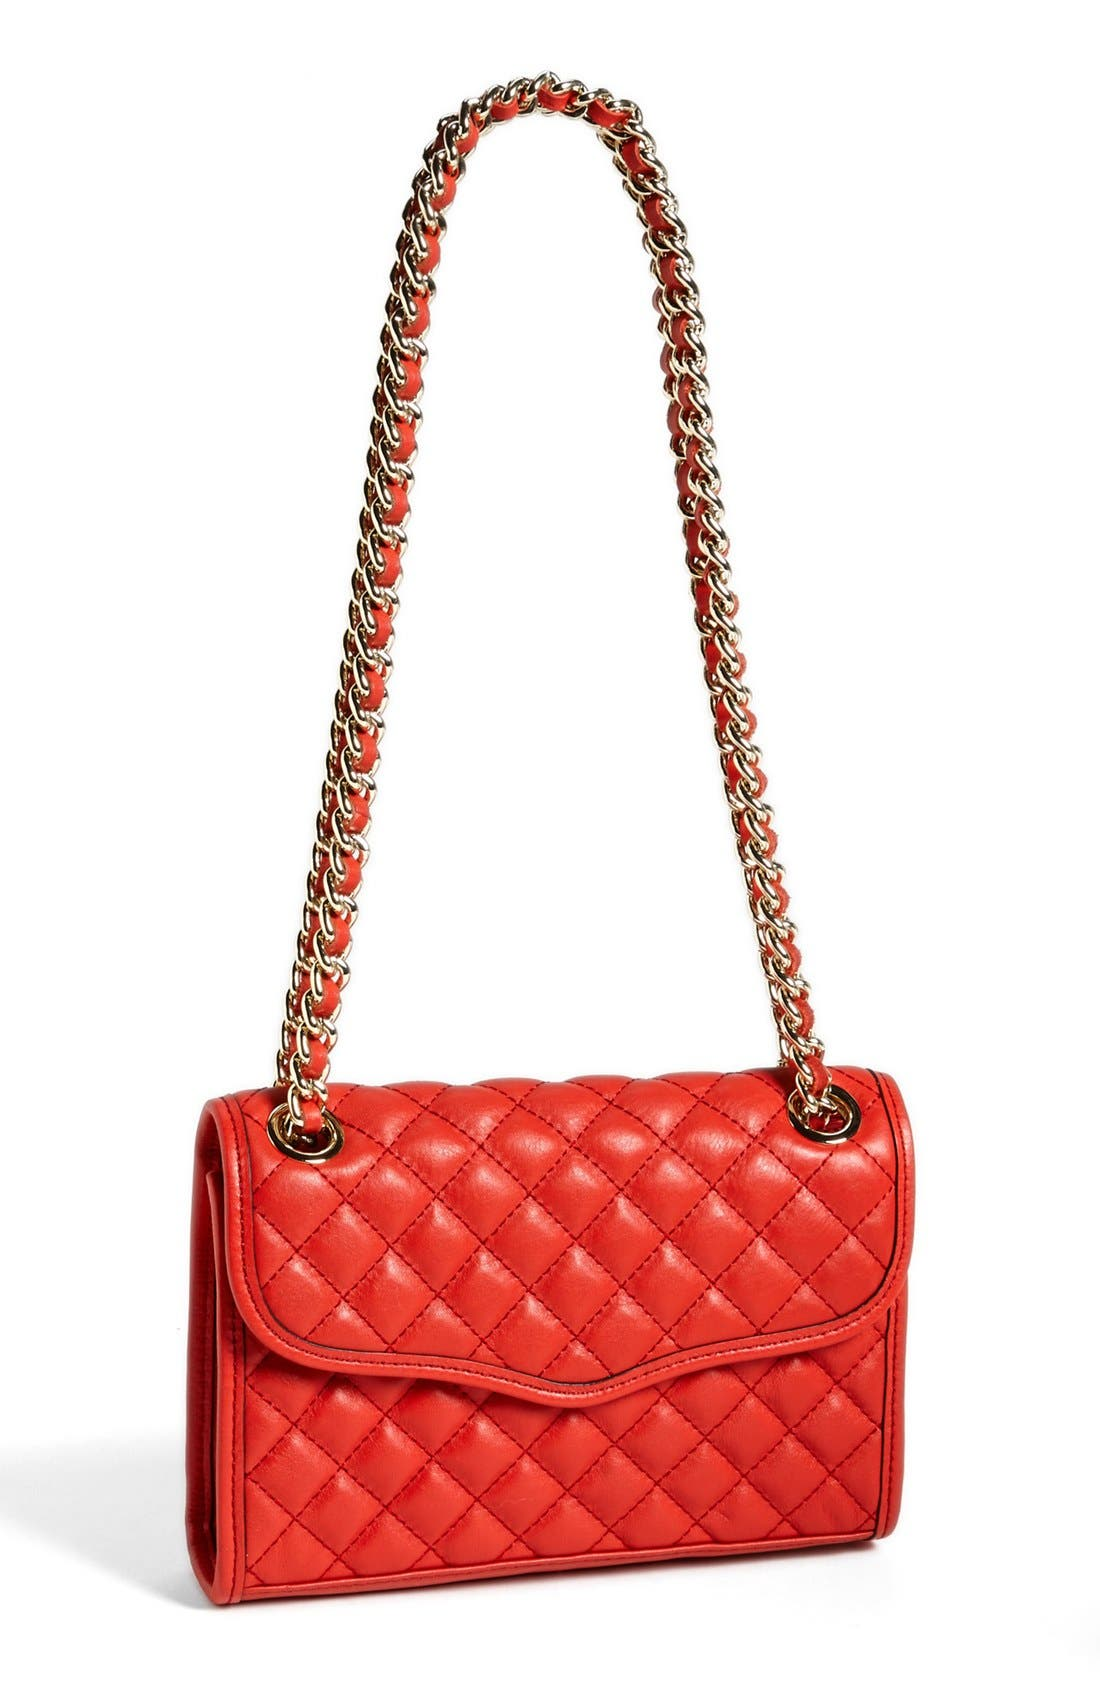 Main Image - Rebecca Minkoff 'Quilted Mini Affair' Convertible Crossbody Bag